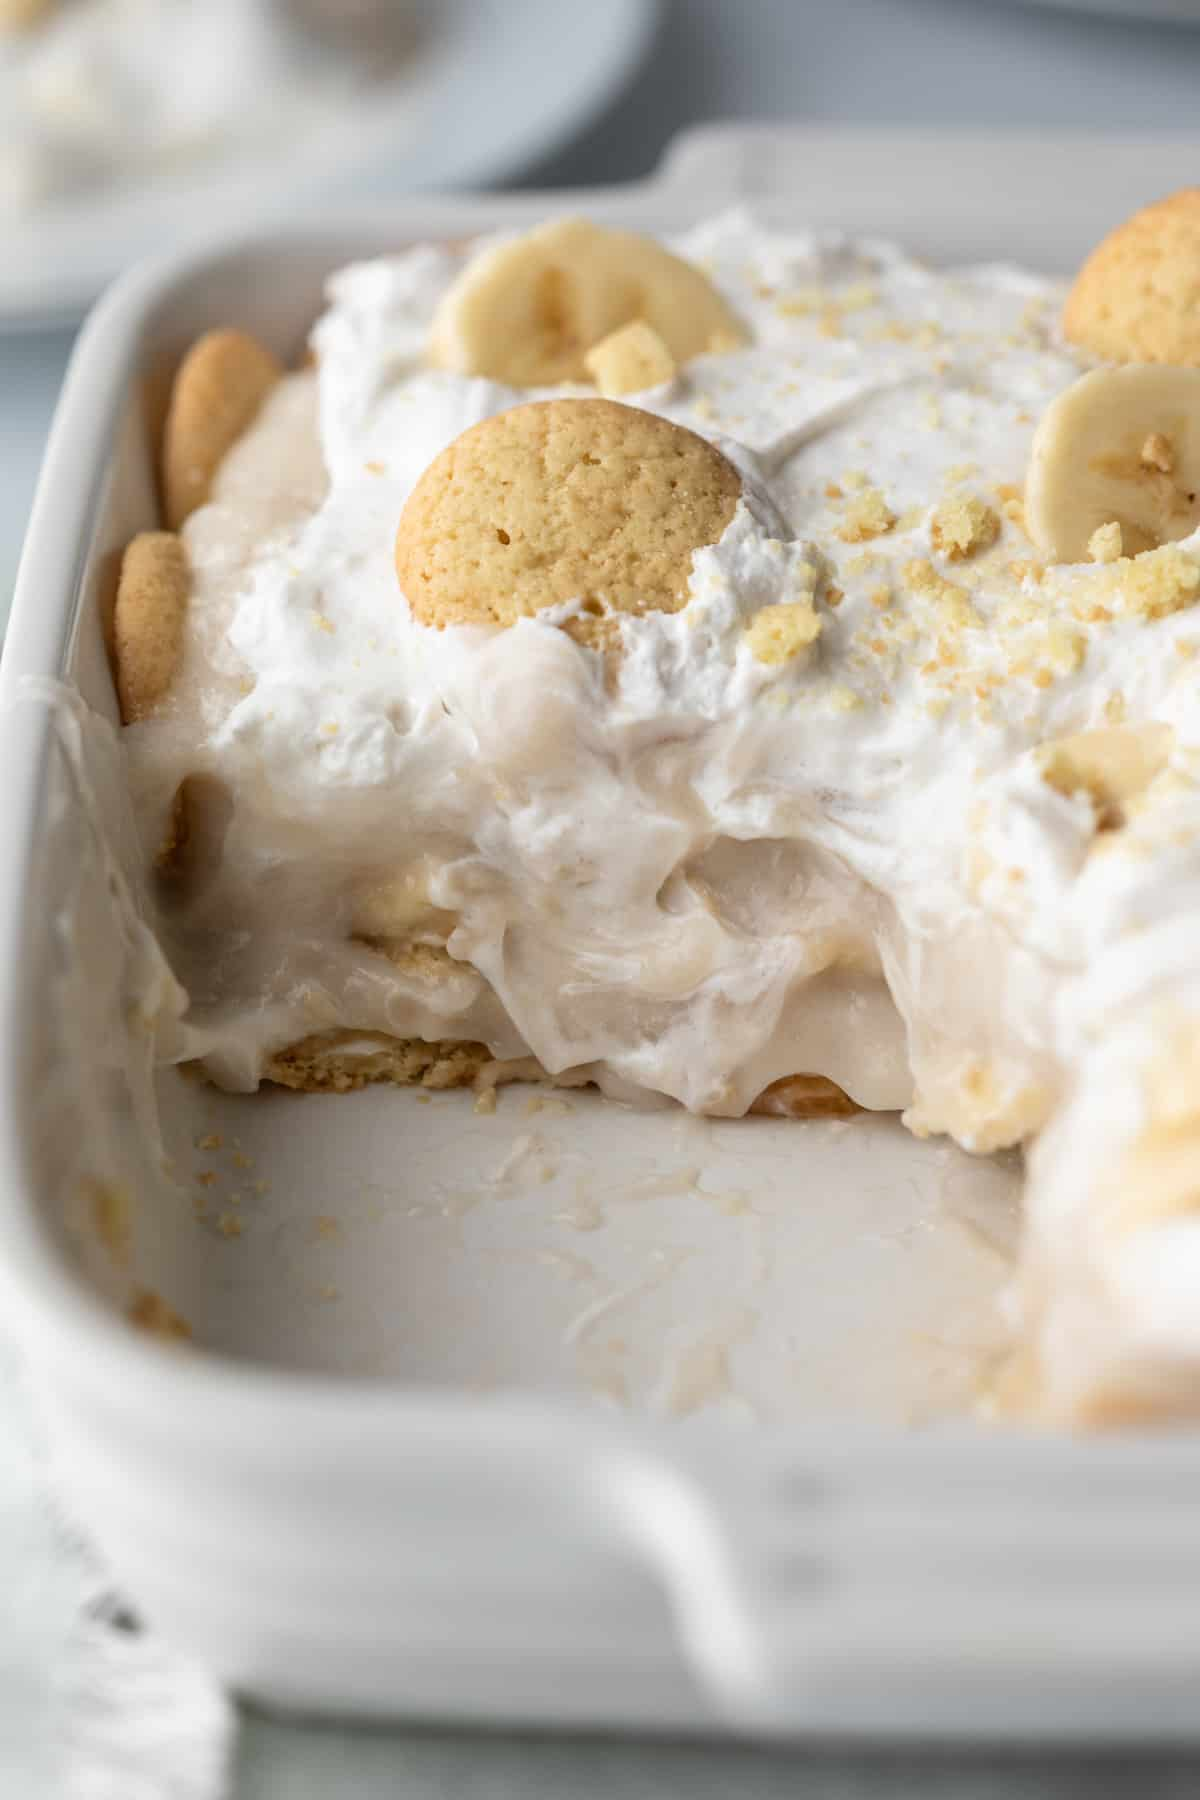 close up of inside showing creamy pudding, whipped topping, and vanilla wafers.